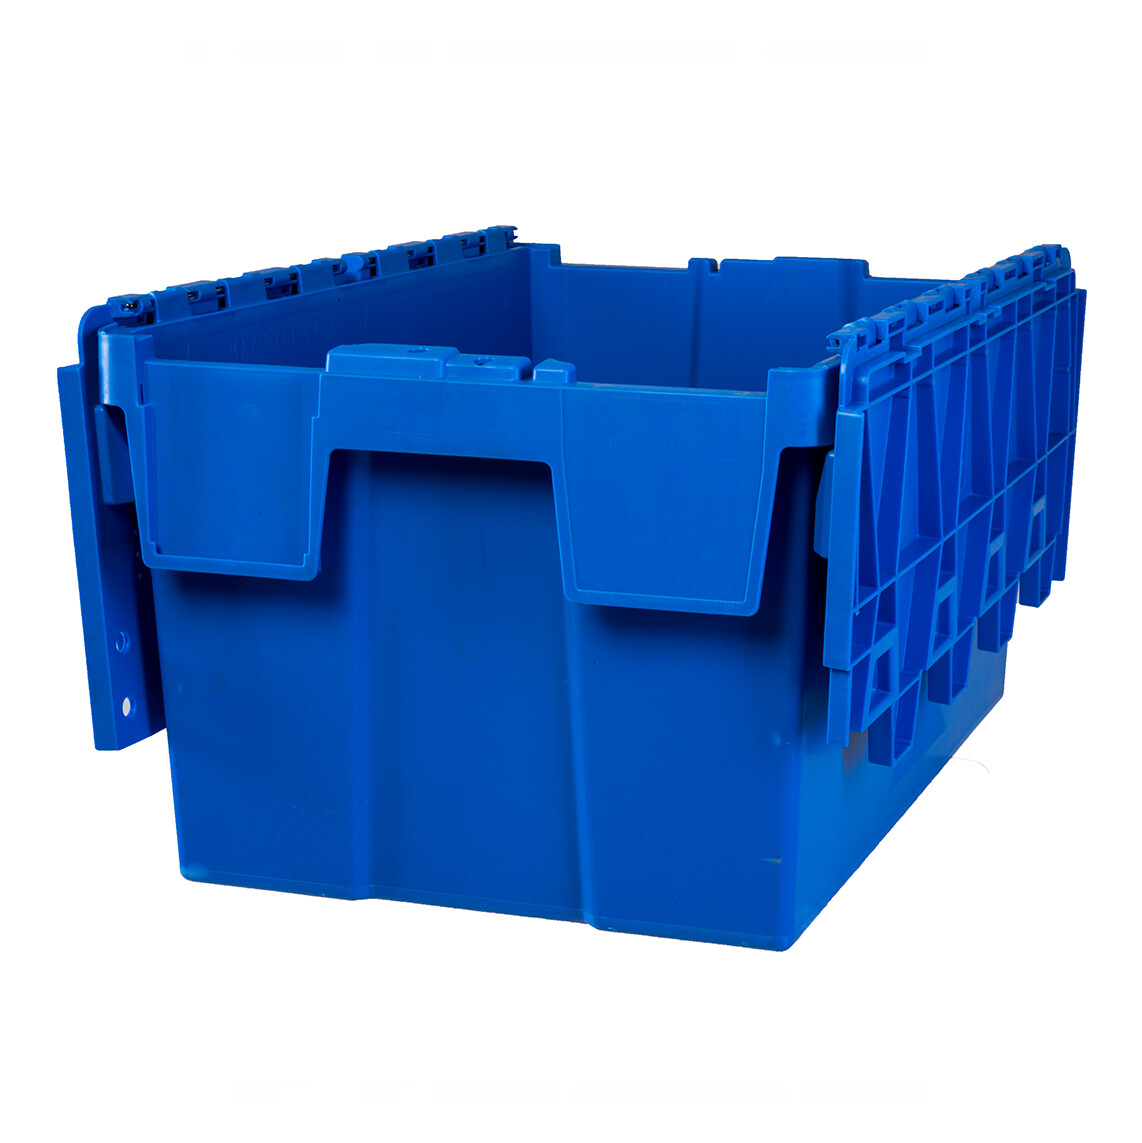 SECURITY CONTAINER COLOUR 600X400X400-BLUE